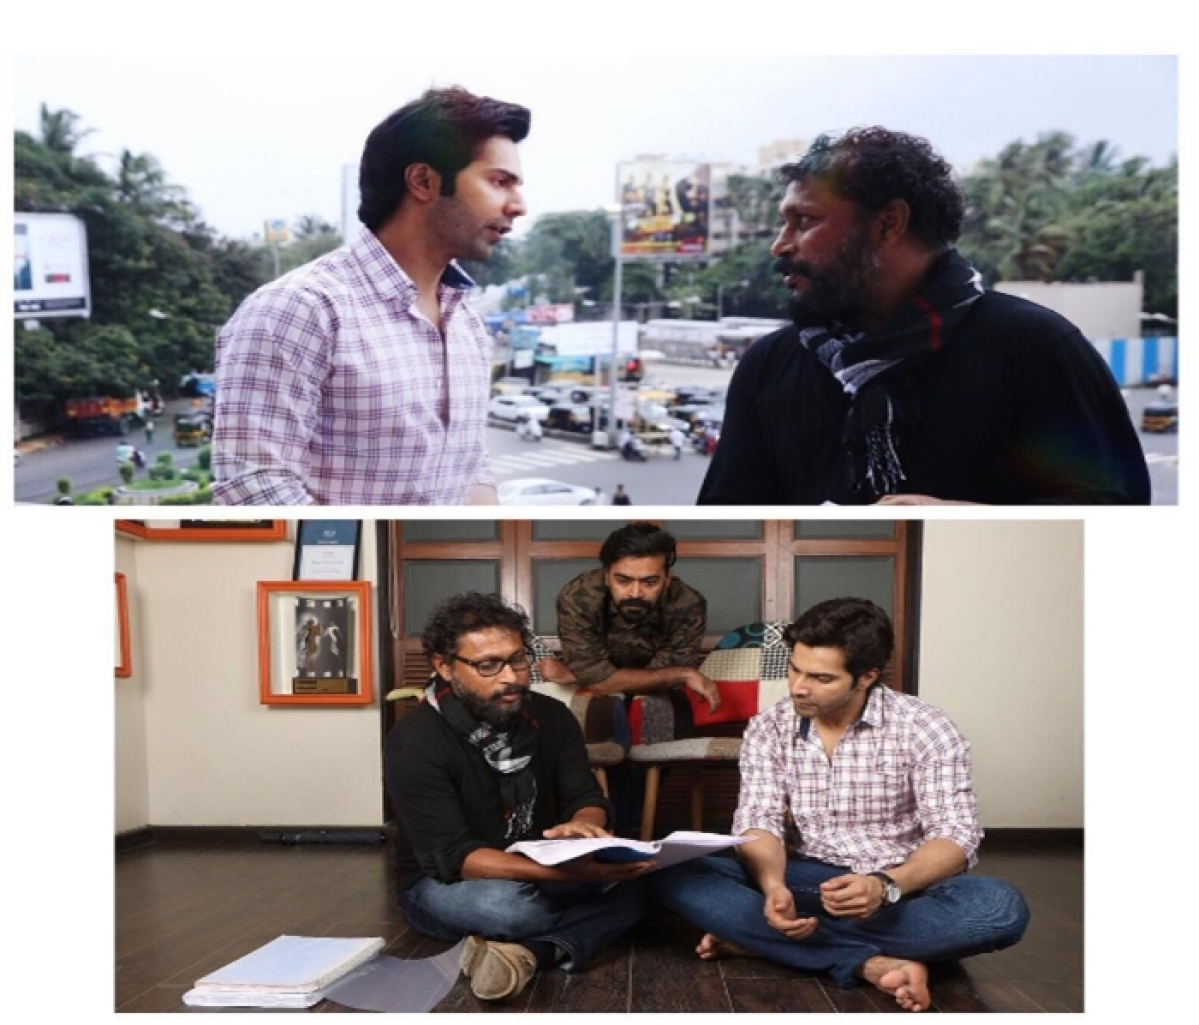 In Pictures: Varun Dhawan and Shoojit Sircar collaborate for unconventional story 'October'